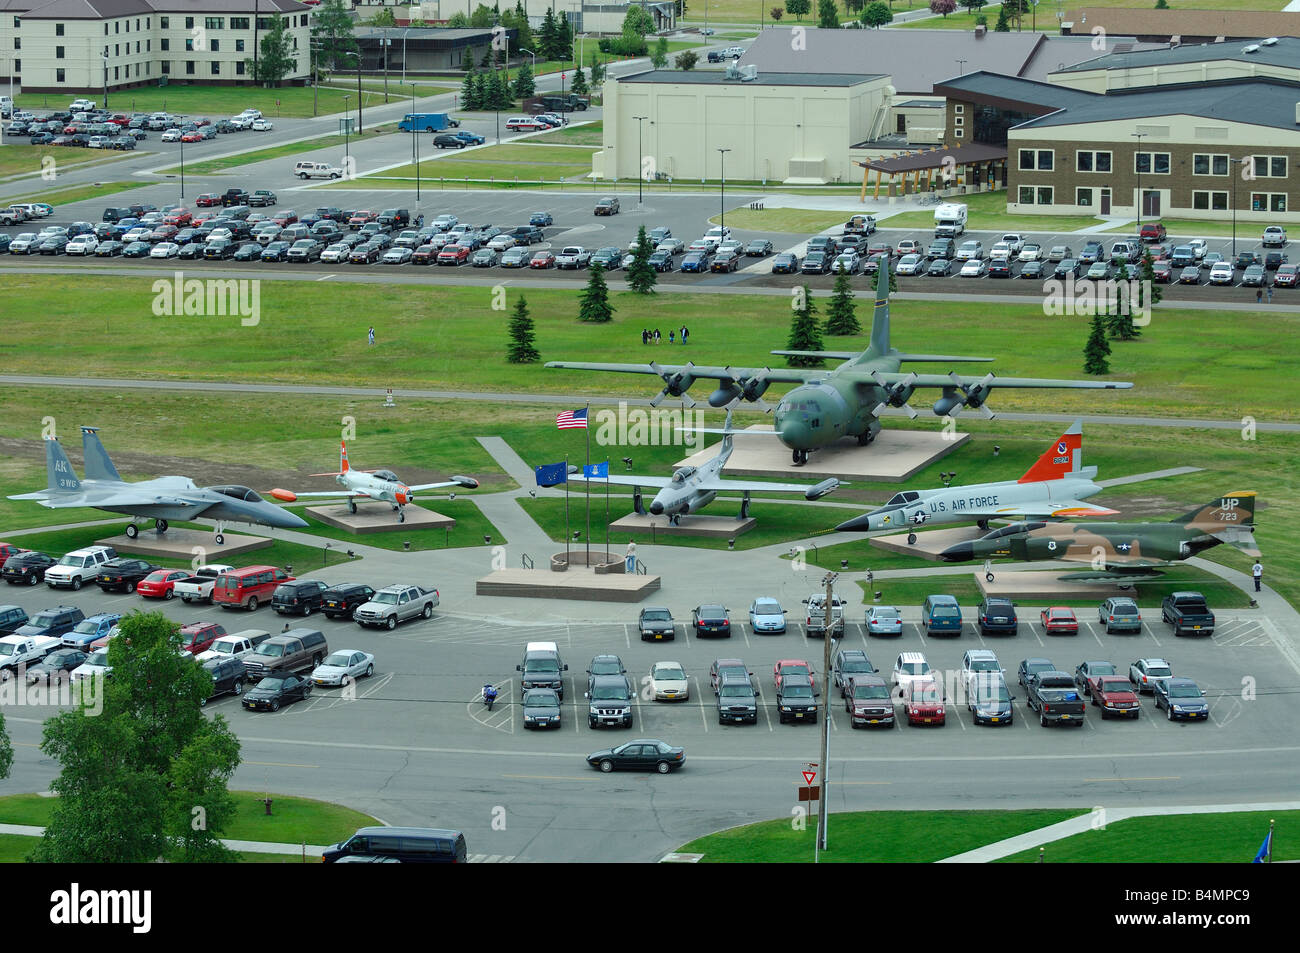 Overview of planes memorial, Elmendorf Air Force Base AFB, Anchorage, Alaska, Usa. - Stock Image